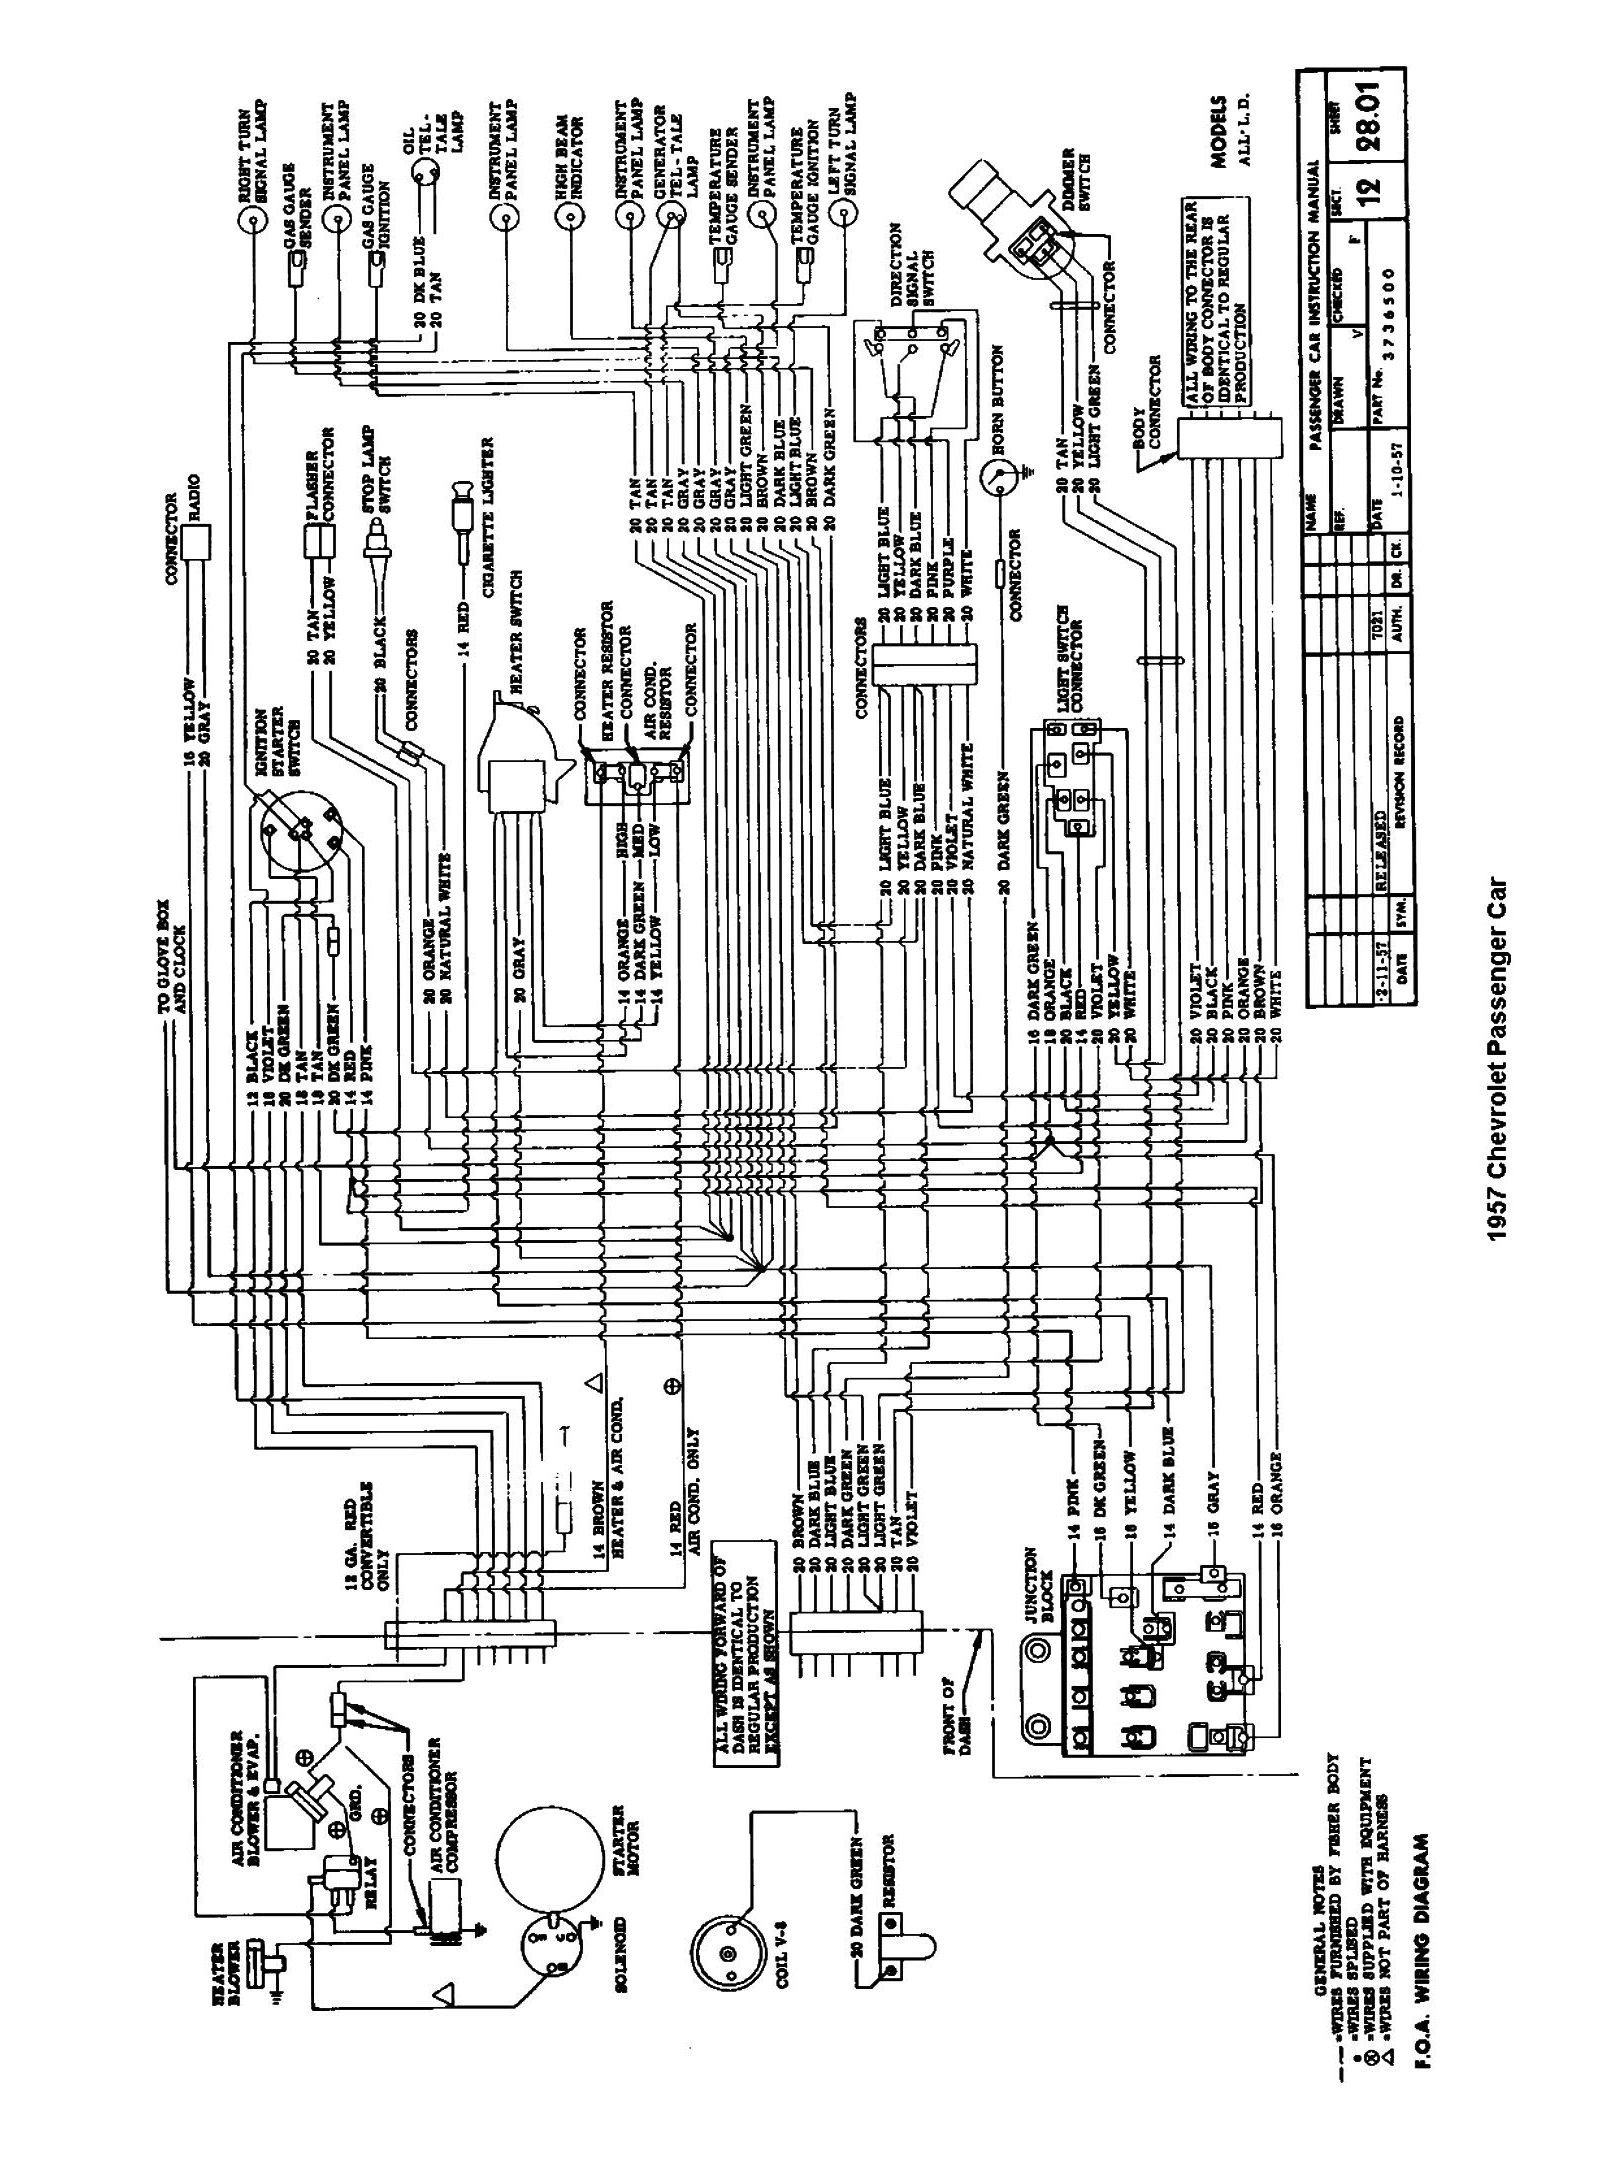 hight resolution of 1980 chevy luv wiring diagram